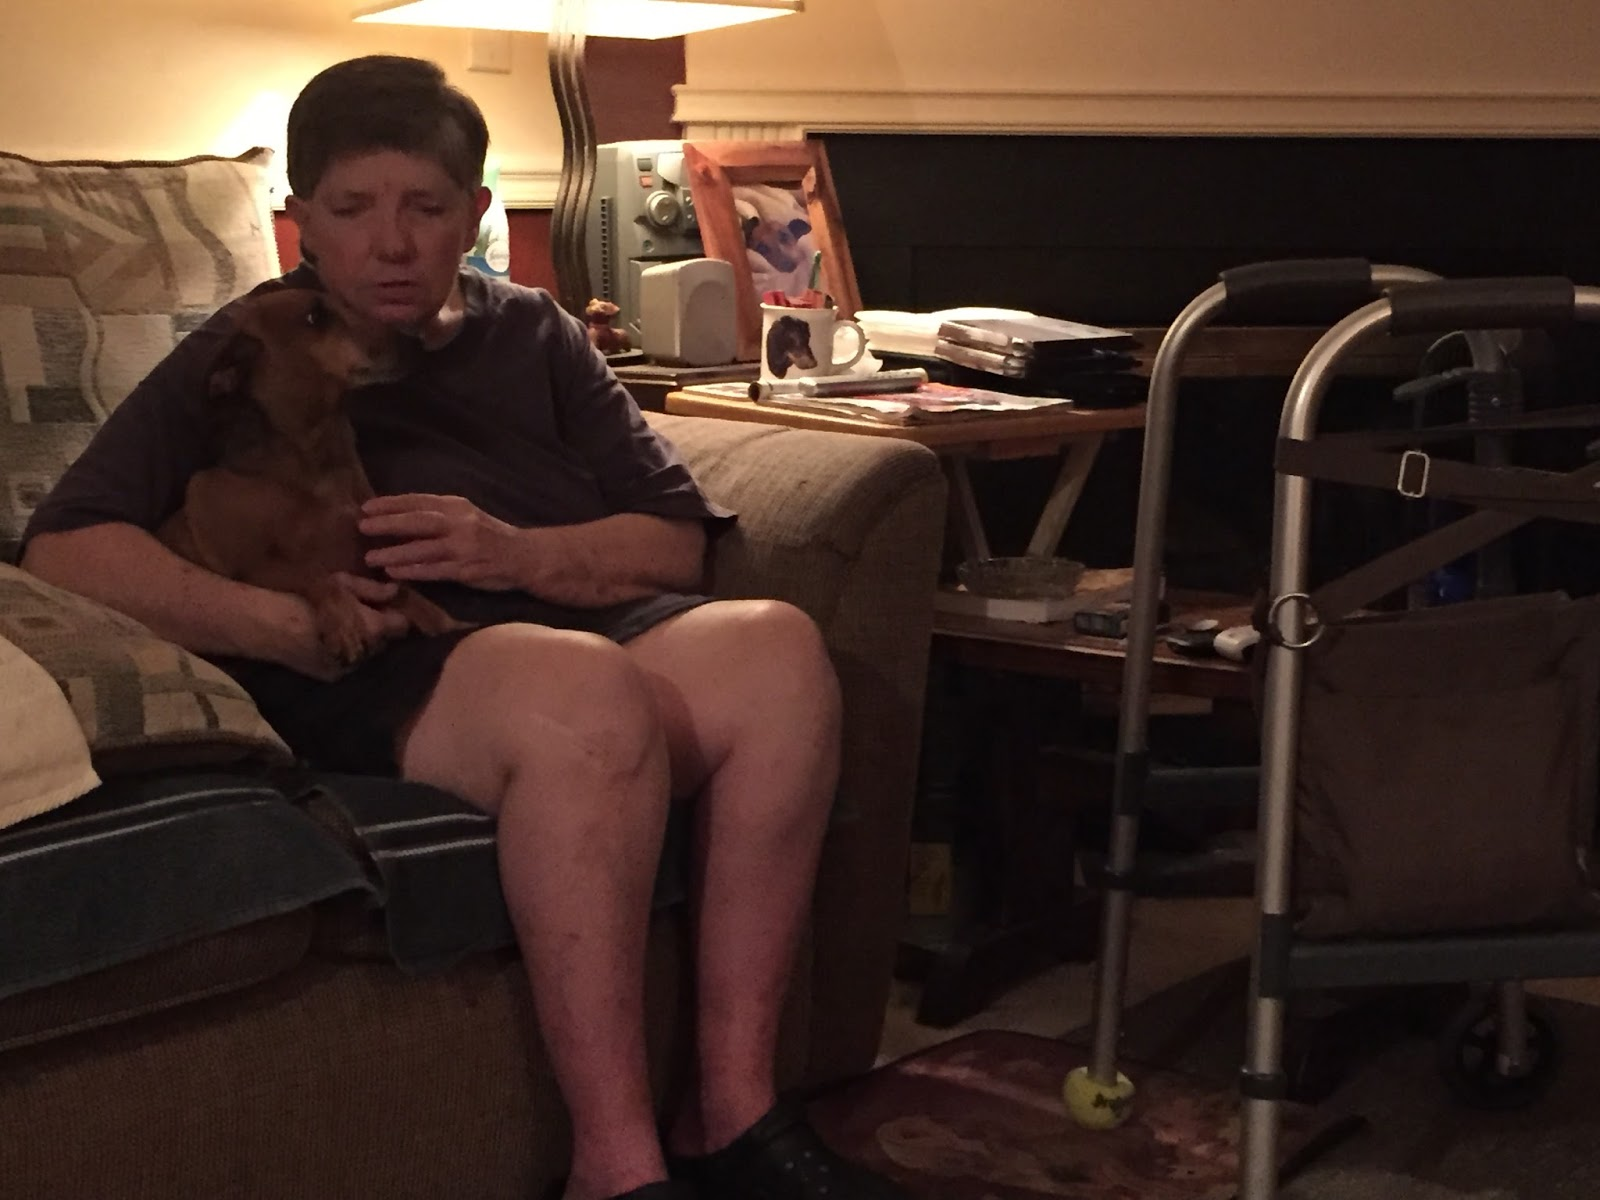 Totally Dependent: 56yearold Douglasville, Georgia Resident Lisa Allrid  Has Been Disabled For More Than 10 Years Mentally Impaired By Sarcoidosis,